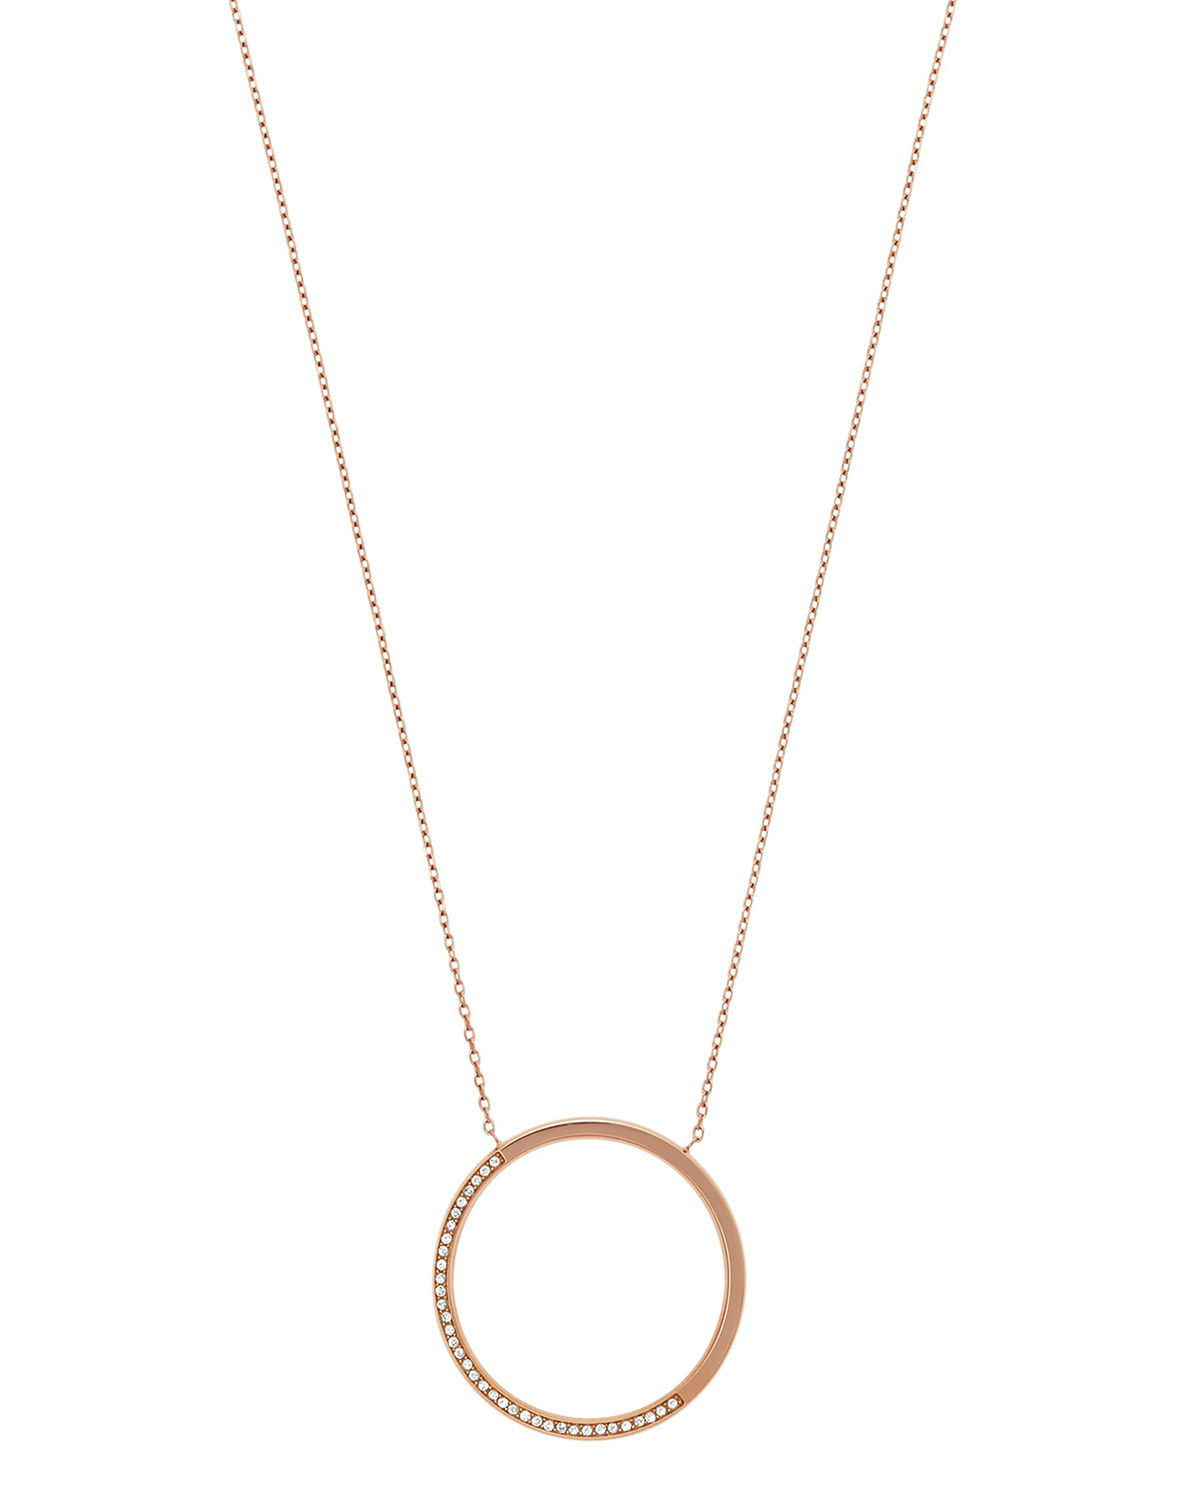 robert morris pav 233 nugget necklace necklaces michael kors open circle pav 233 pendant necklace in